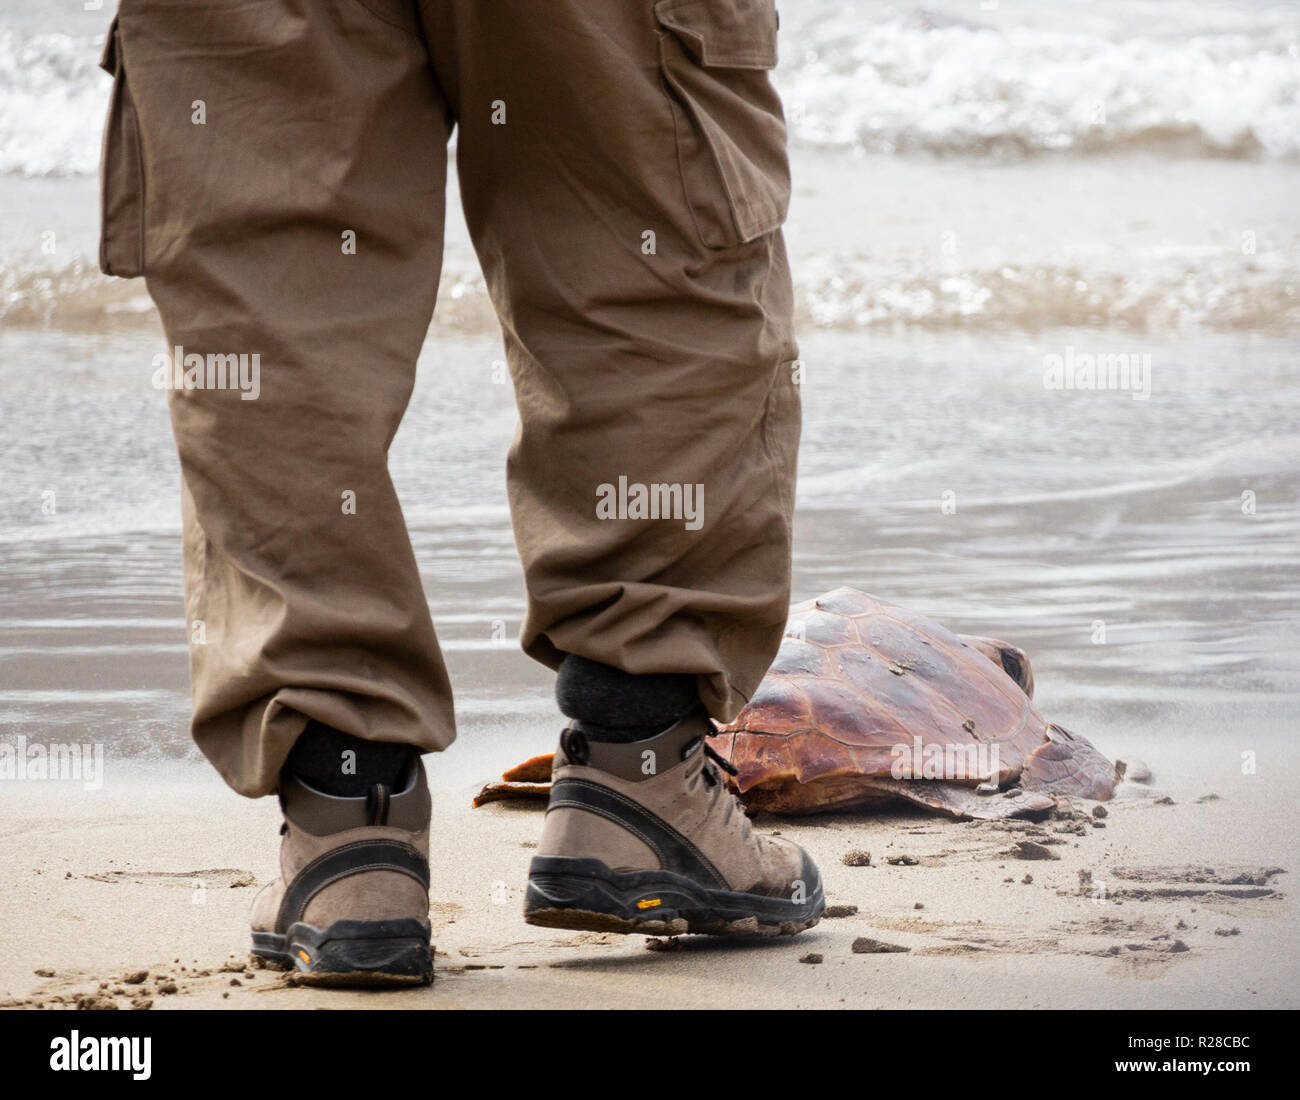 Las Palmas, Gran Canaria, Canary Islands, Spain. 17th November 2018. Following a spell of rehabilitation in the local rescue centre, Turtles are released back into the Atlantic ocean from the city beach in Las Palmas on Gran Canaria. Credit: ALAN DAWSON/Alamy Live News - Stock Image